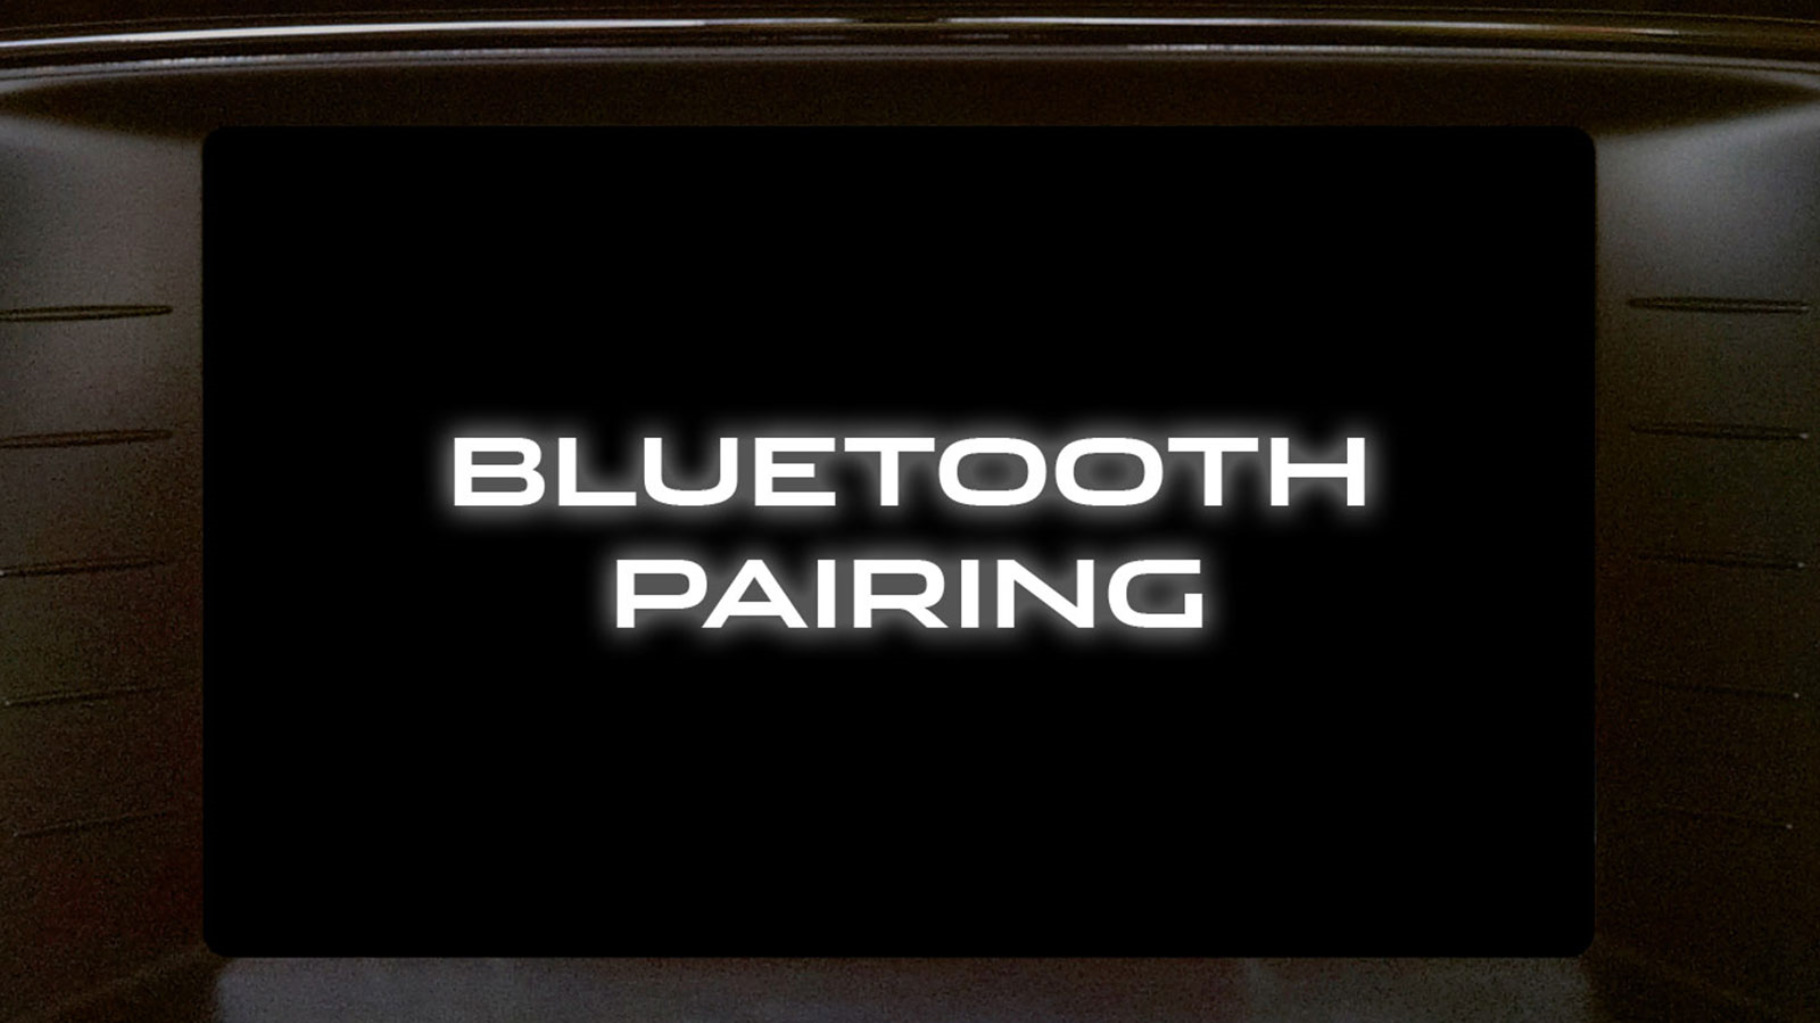 IMG_WRAPPER_gallery_Bluetooth_Pairing_Device-Desktop_1600x900.jpg